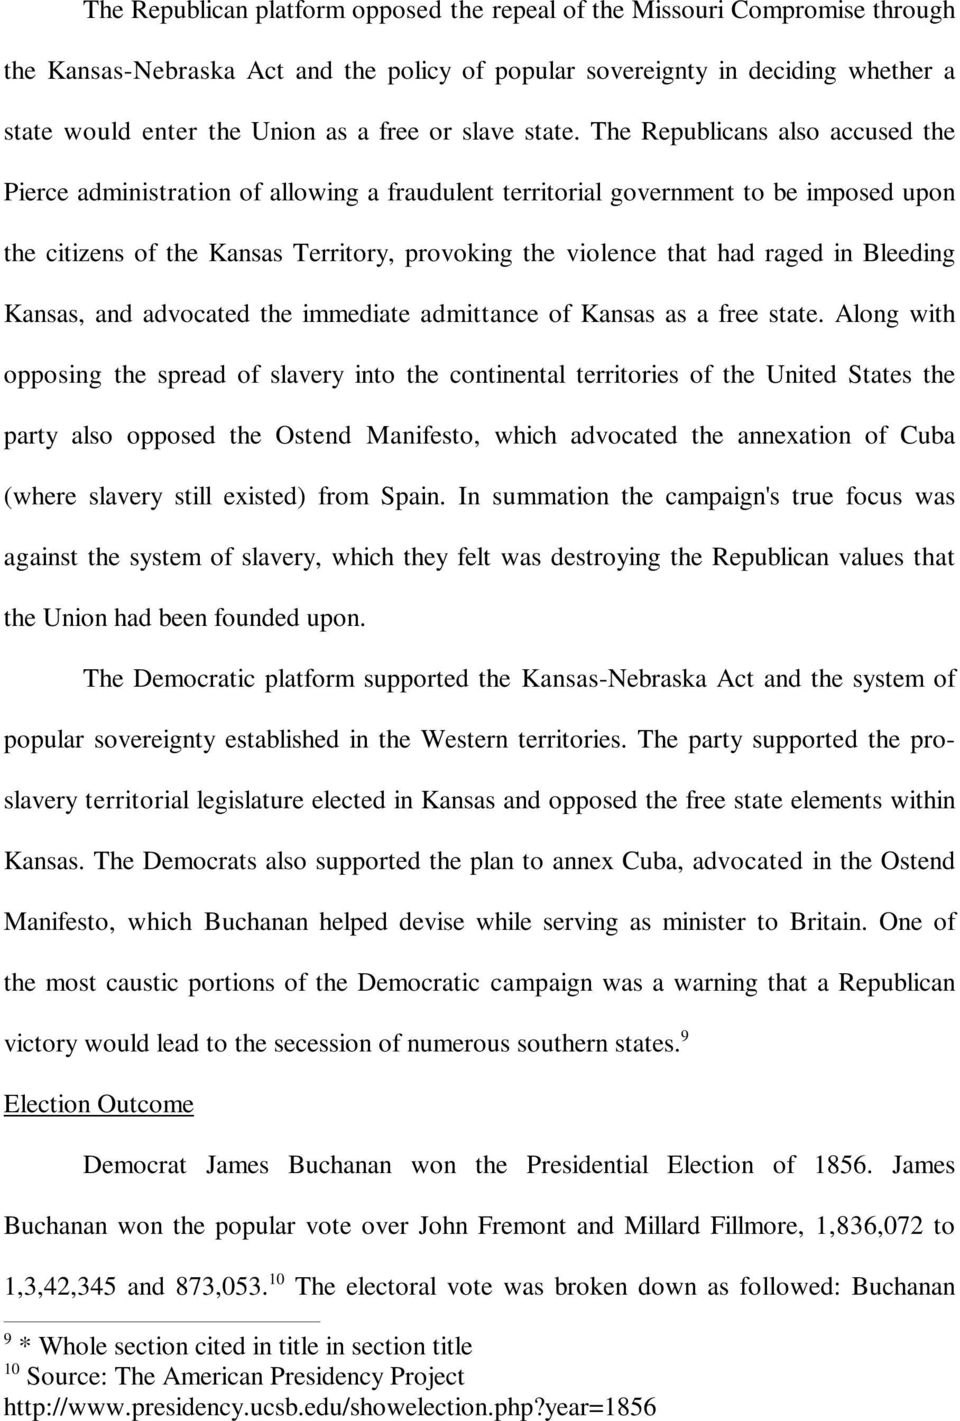 The Republicans also accused the Pierce administration of allowing a fraudulent territorial government to be imposed upon the citizens of the Kansas Territory, provoking the violence that had raged